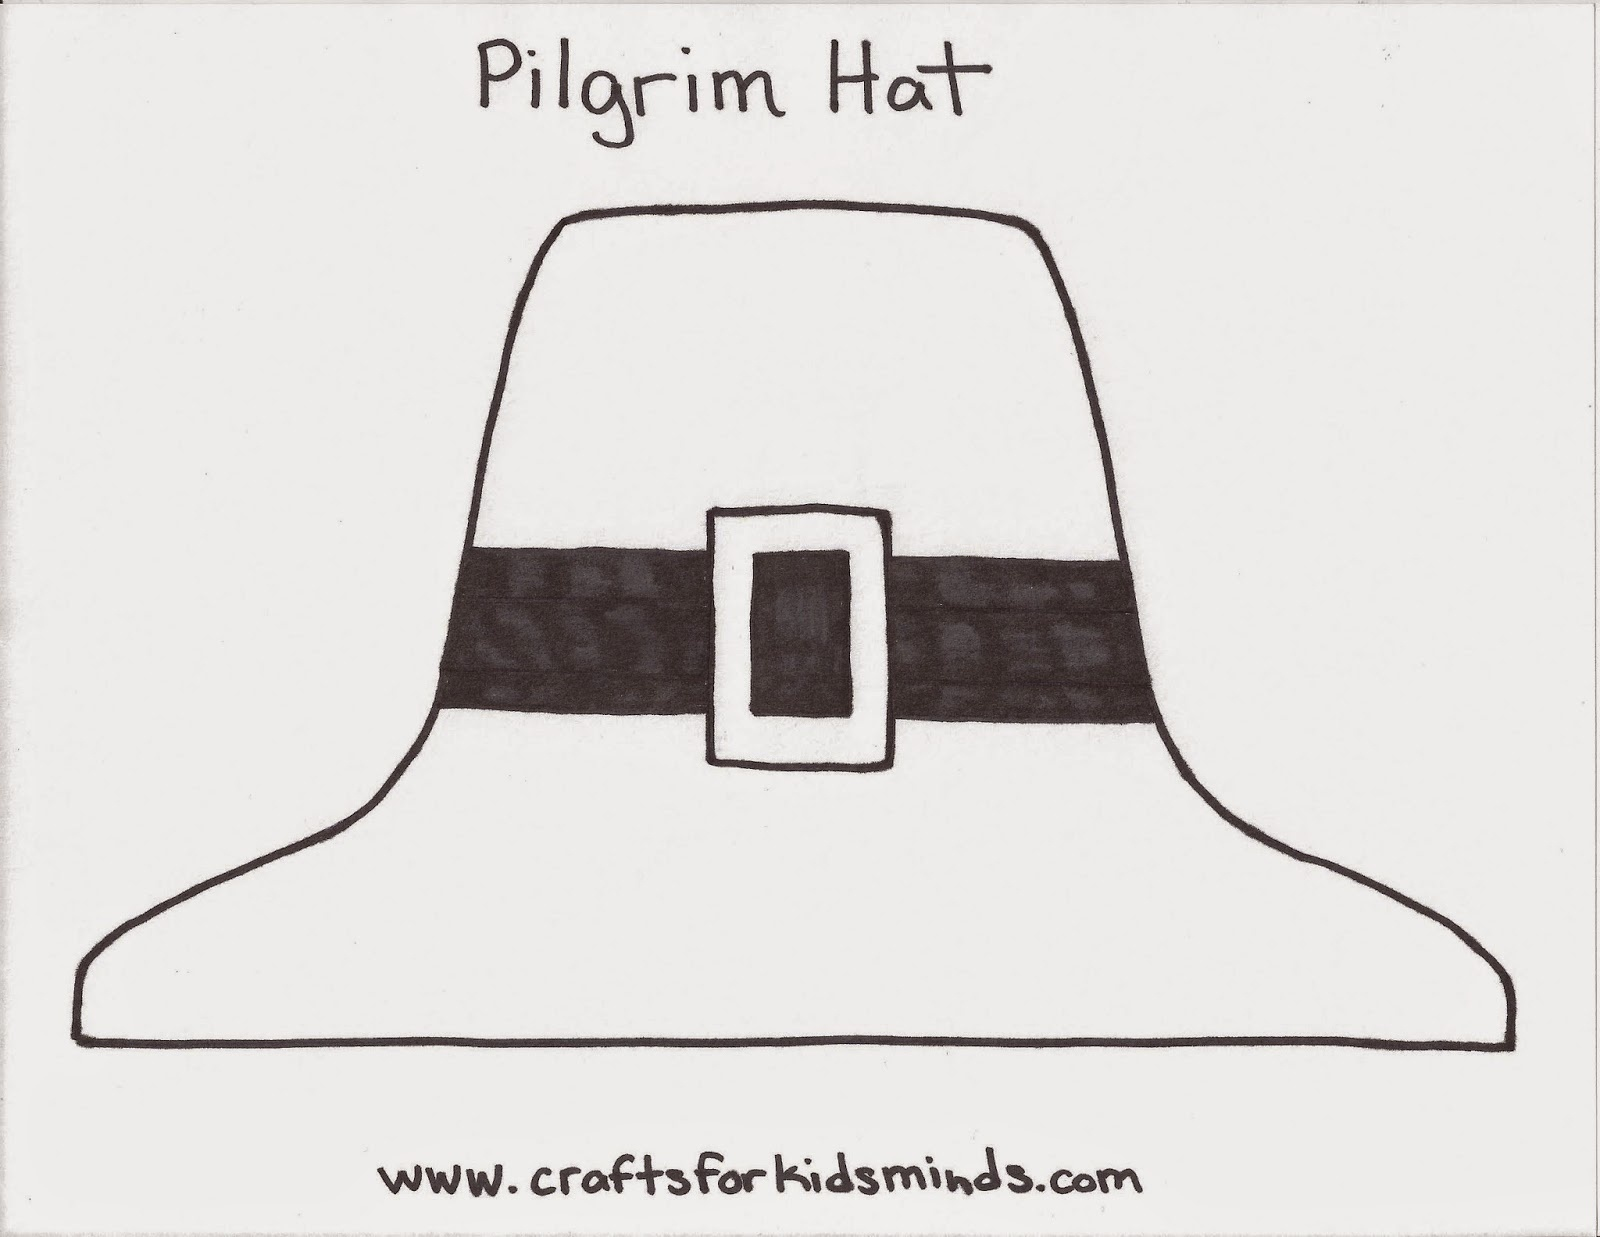 Crafts For Kids' Minds: Pilgrim Hat Craft - Free Printable Pilgrim Hat Pattern